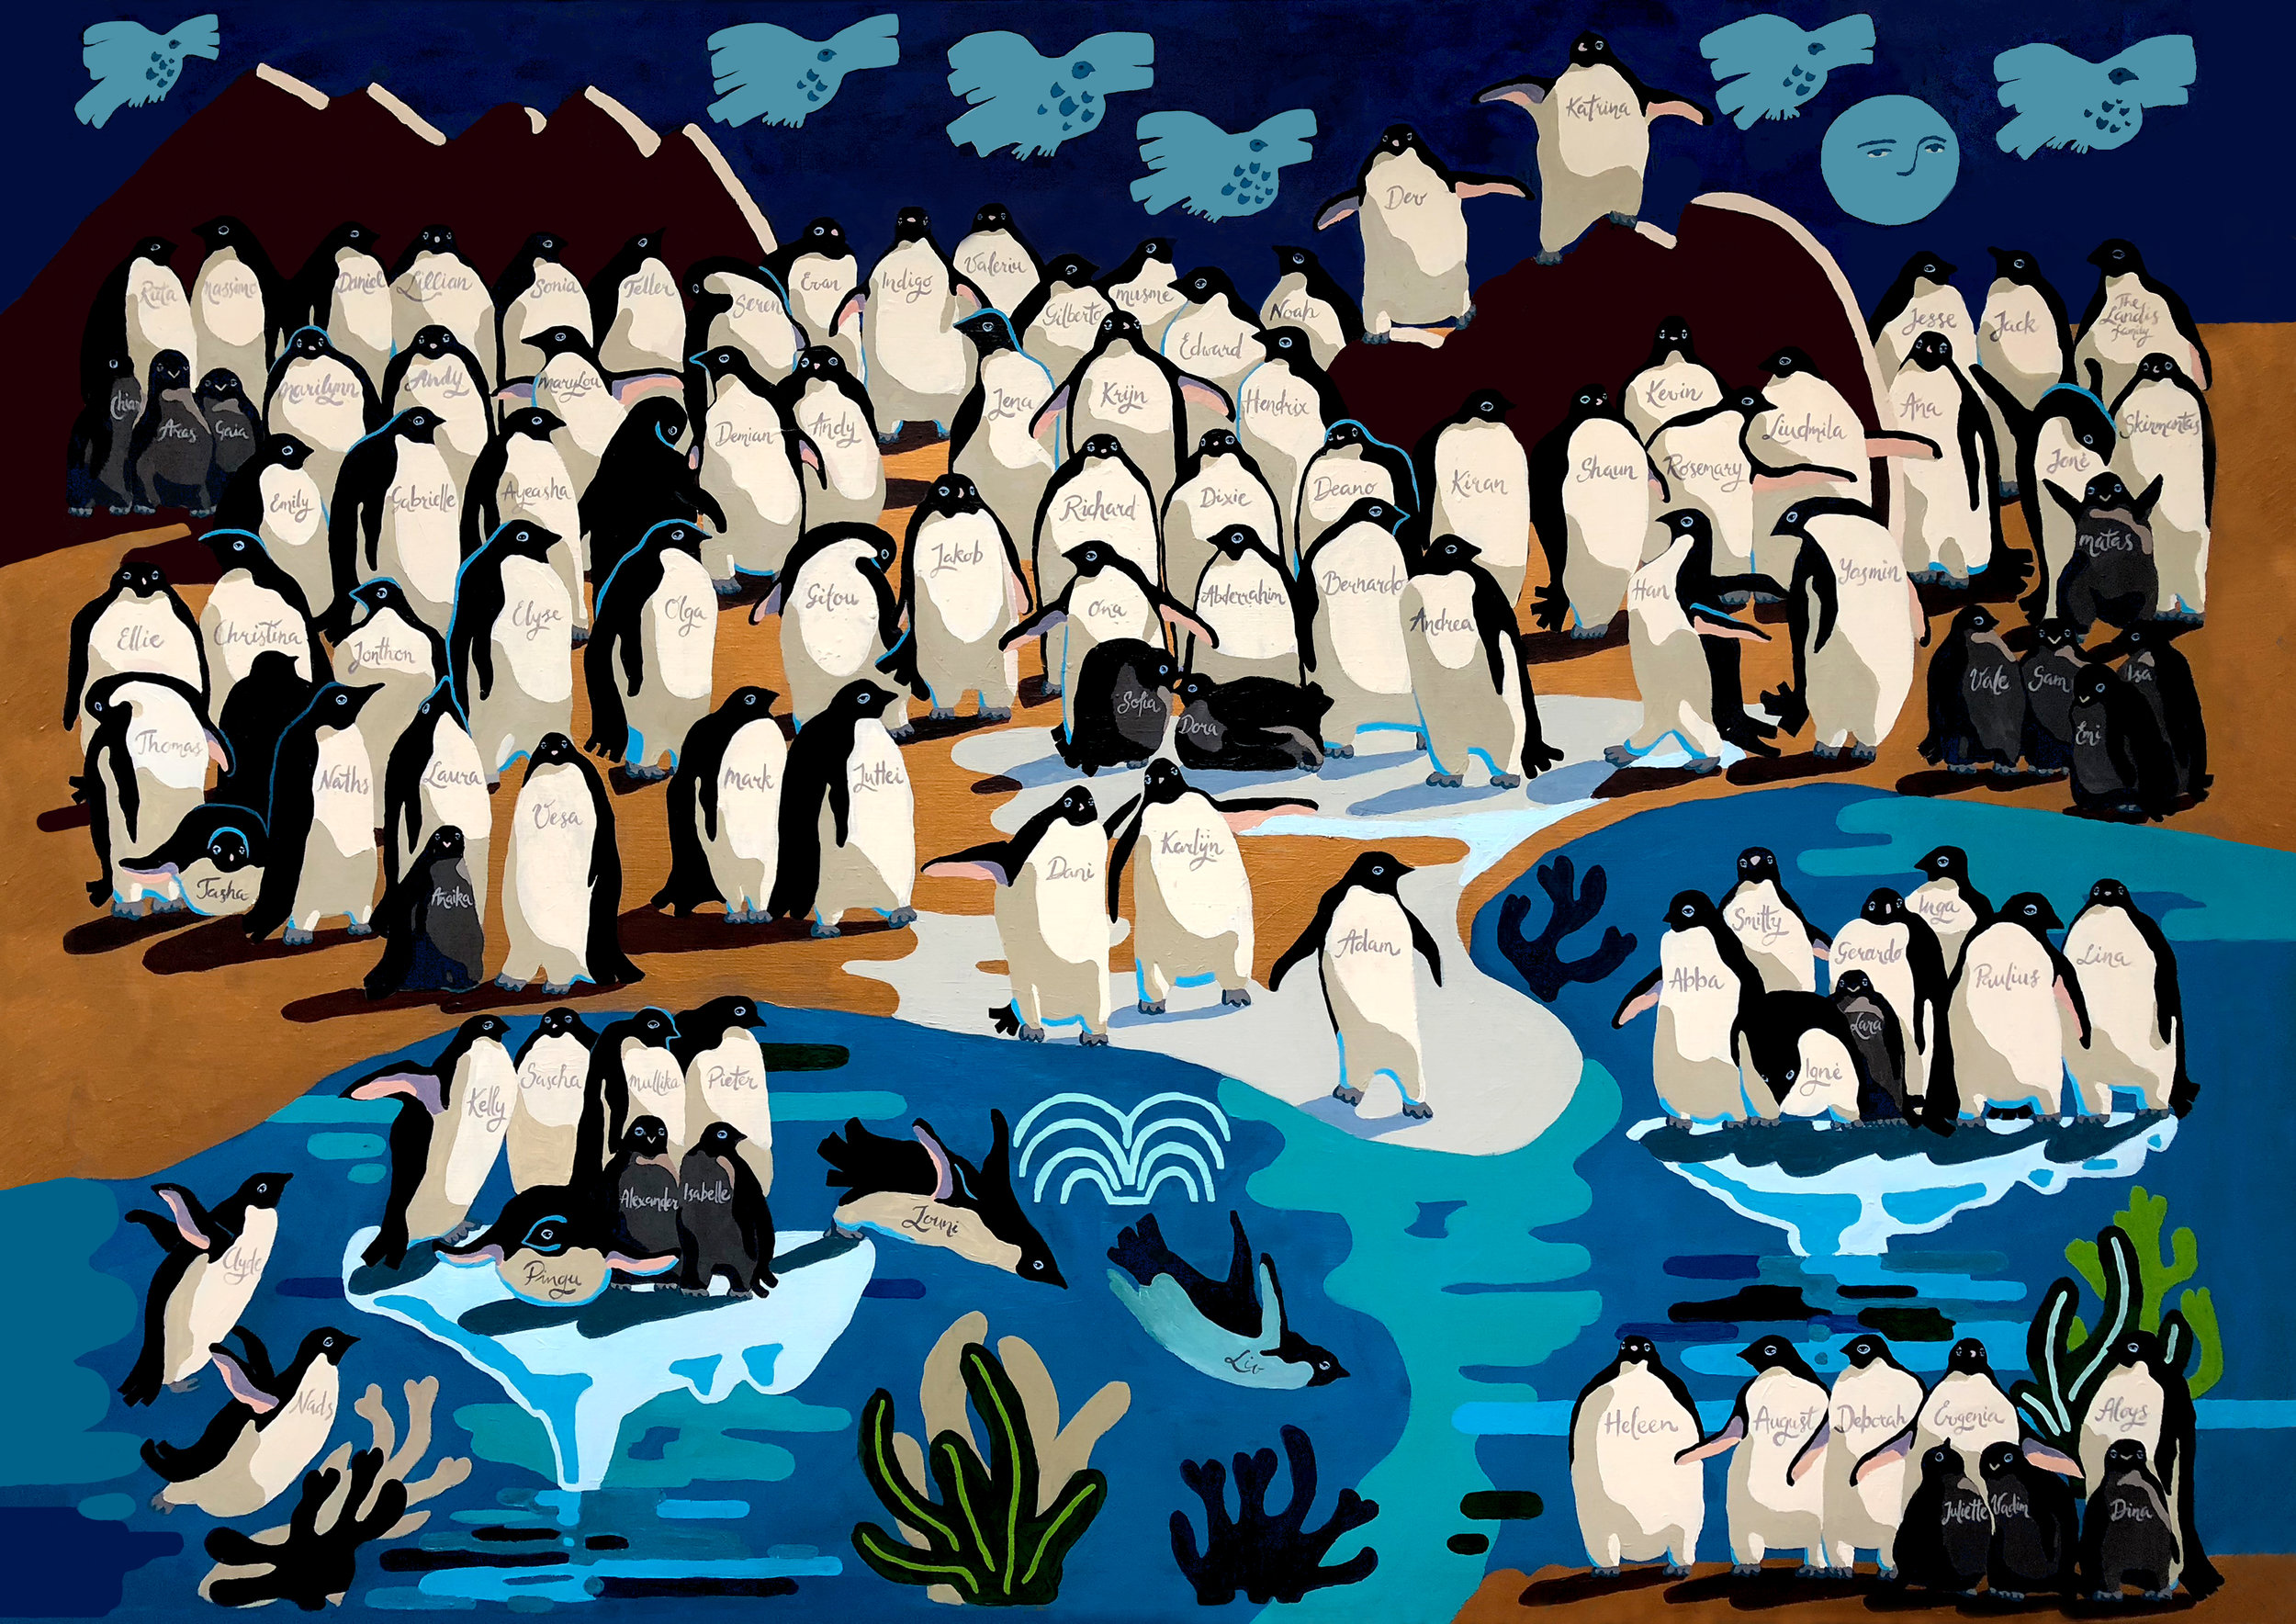 Penguins-with-names.jpg